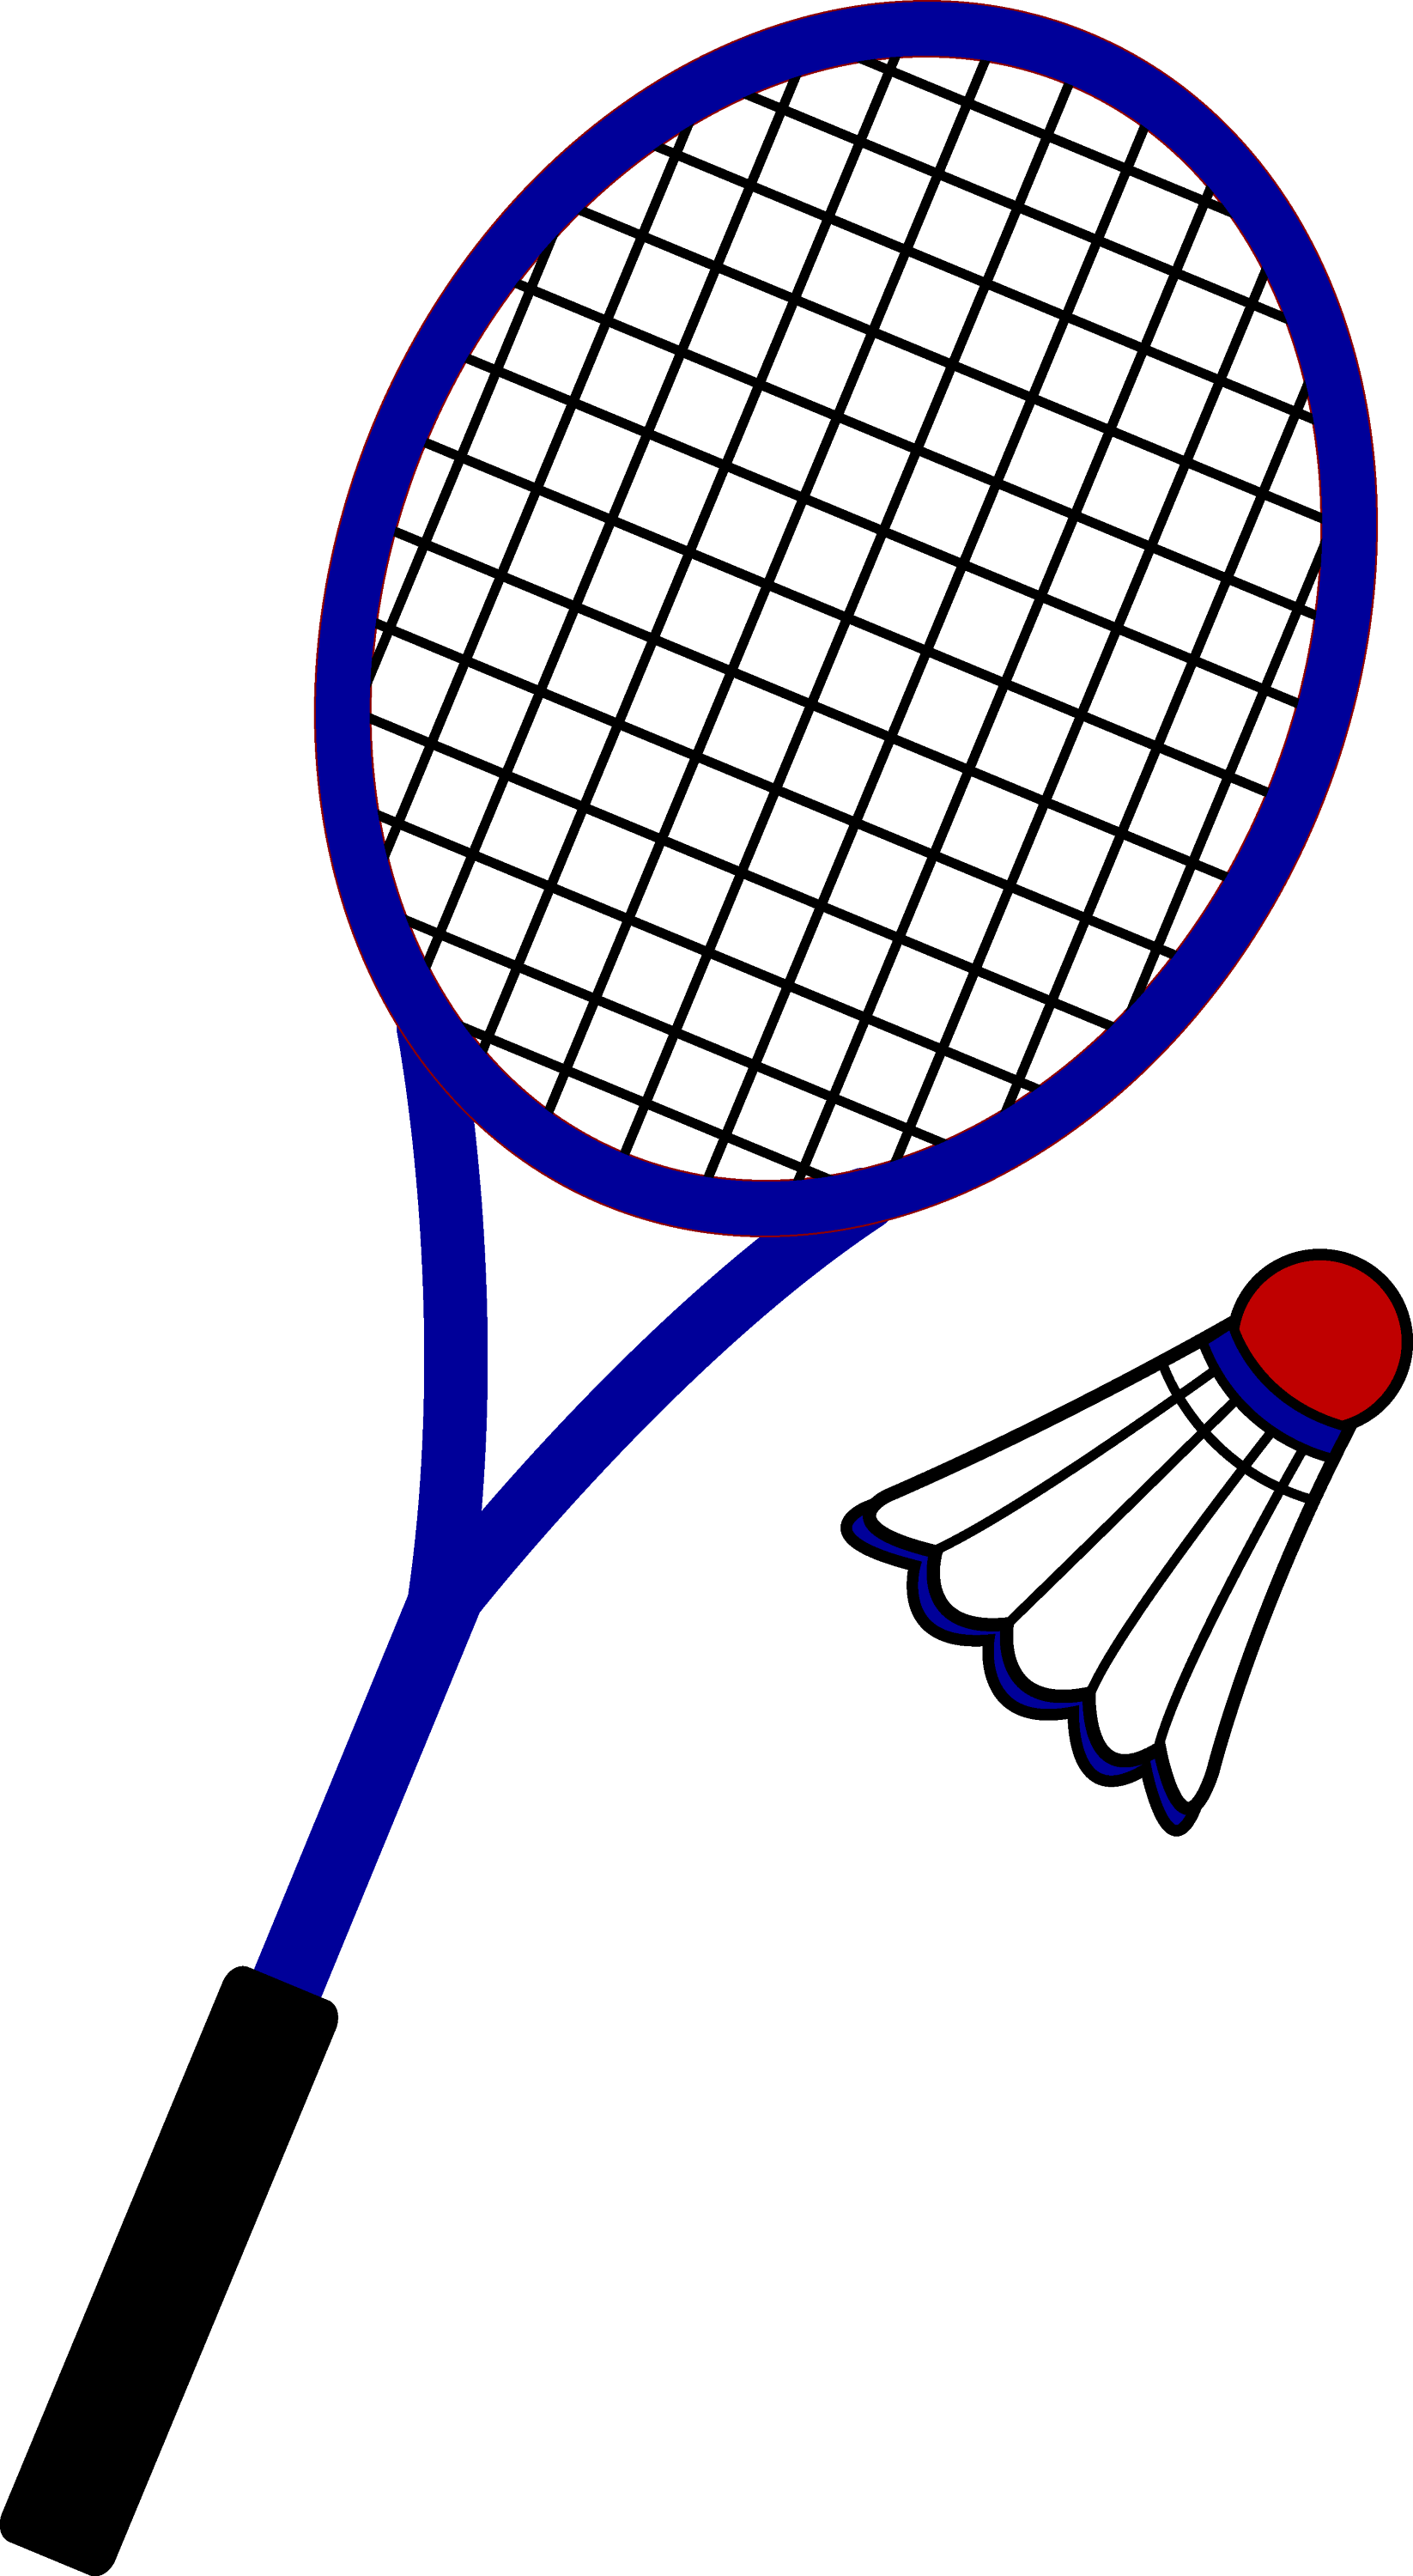 Badminton racket and birdie